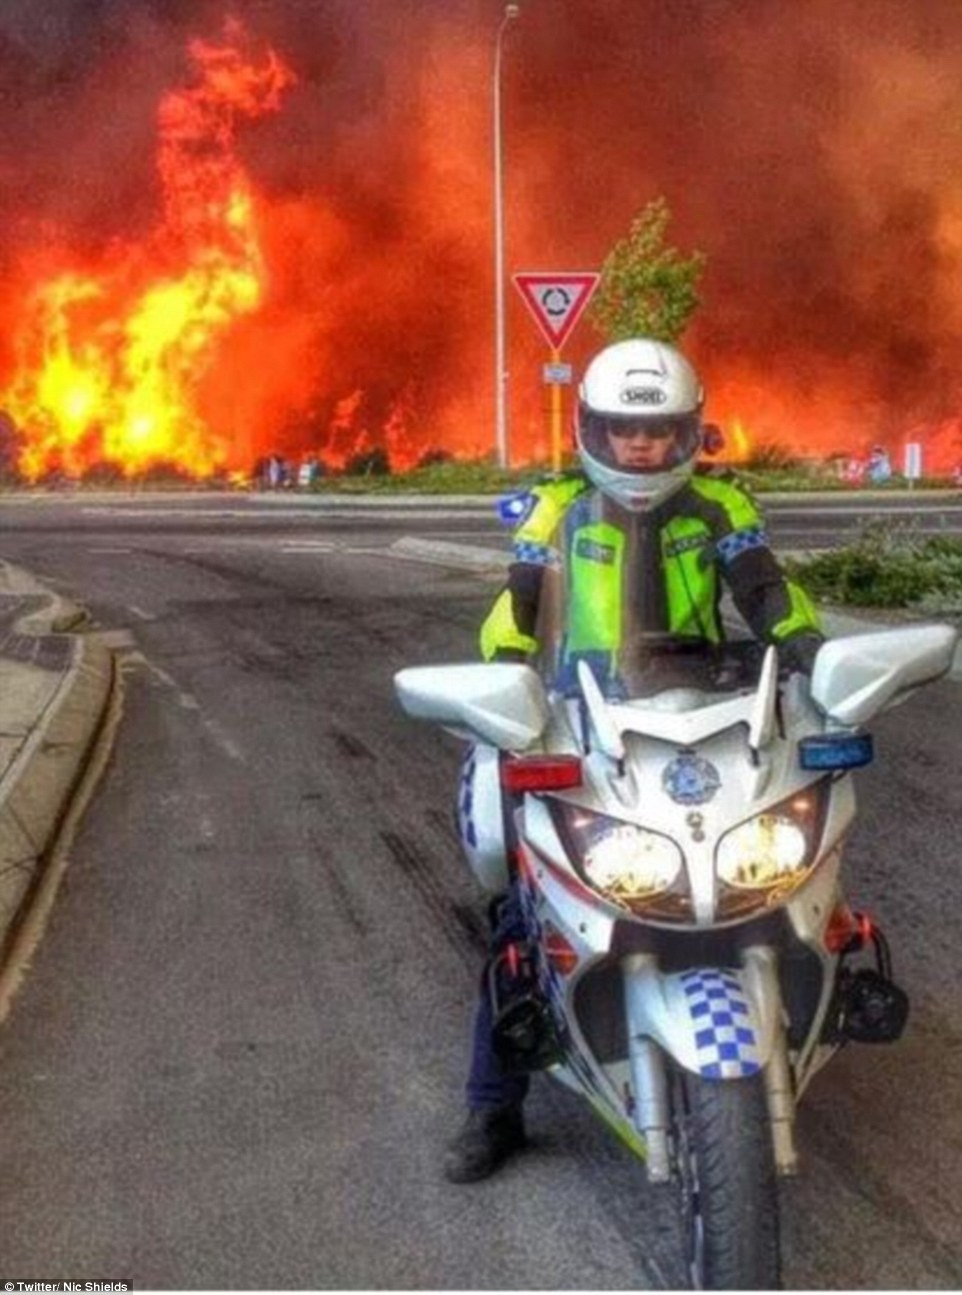 A police man stands guard at Whiteman Park after a vicious fire raced through the Perth suburb